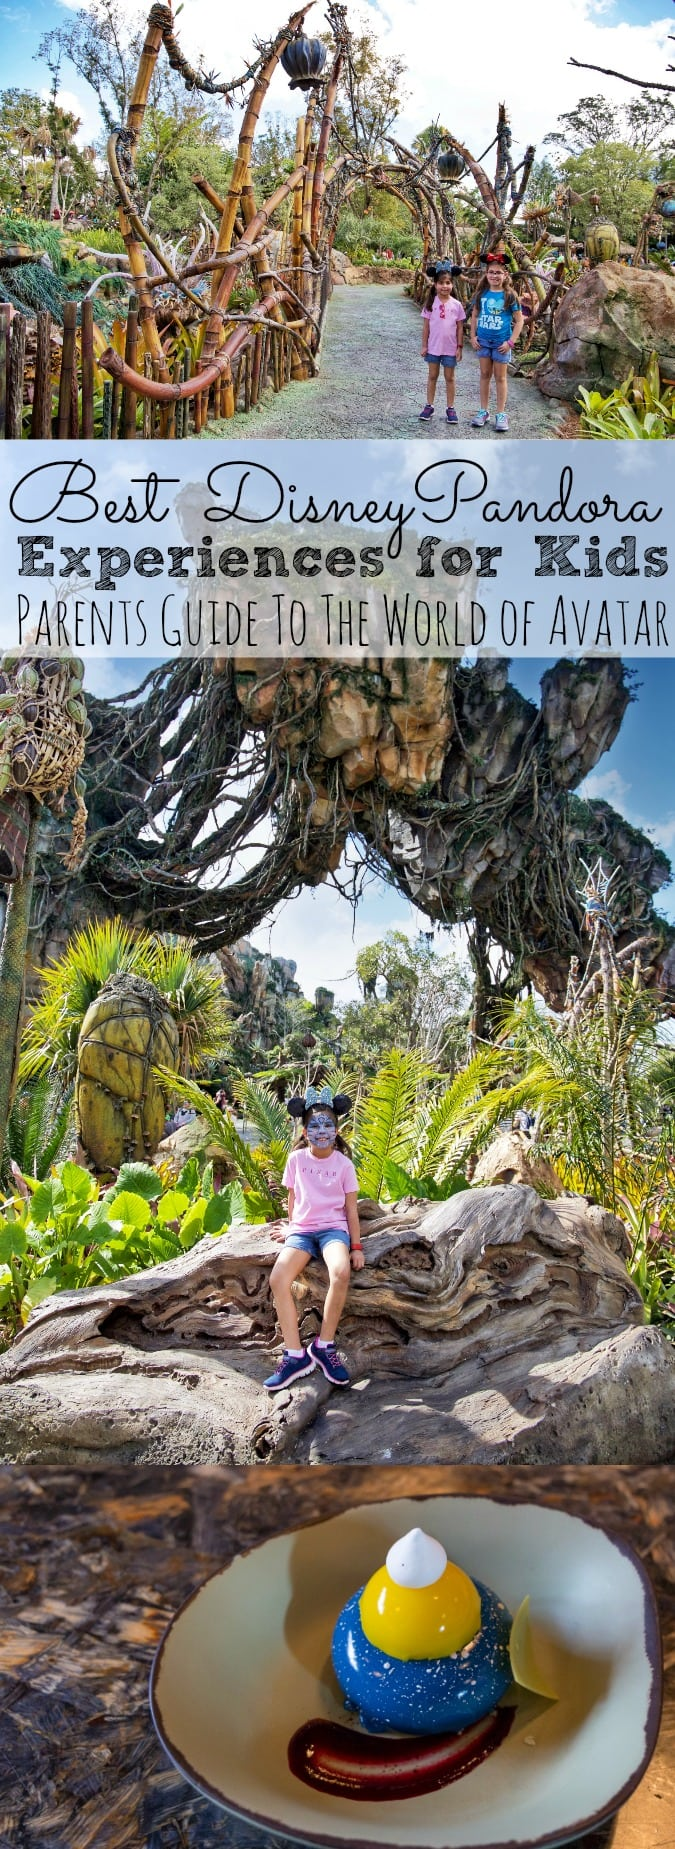 Best Disney Pandora Experiences For Kids | Parents Guide To The World of Avatar - simplytodaylife.com